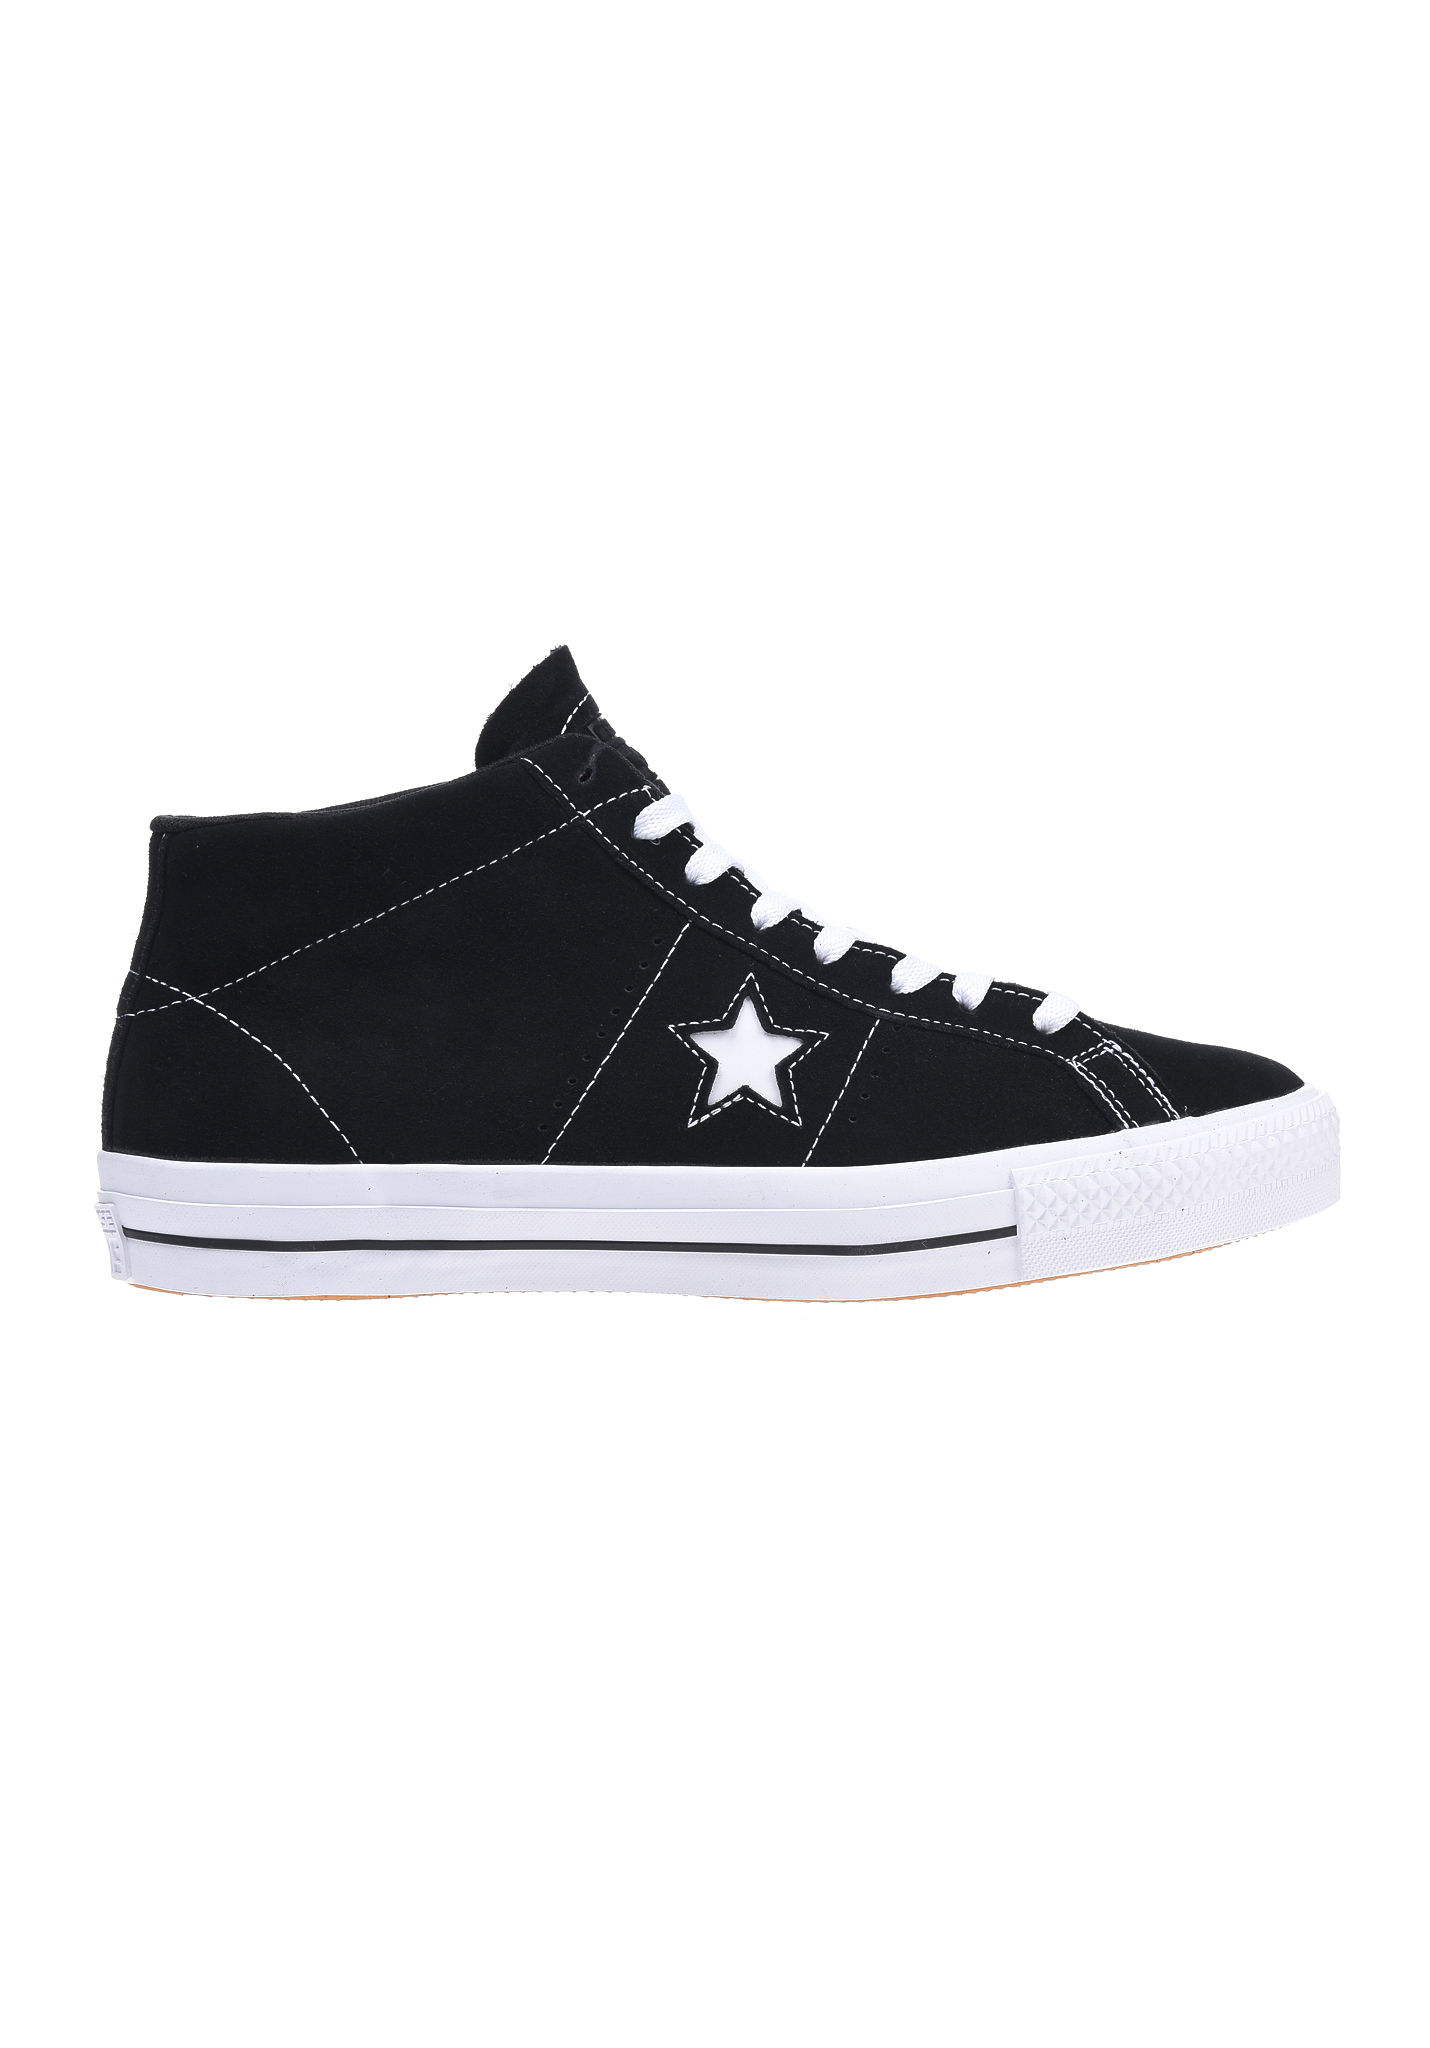 Converse One Star Pro Suede Mid Sneaker Schwarz Planet